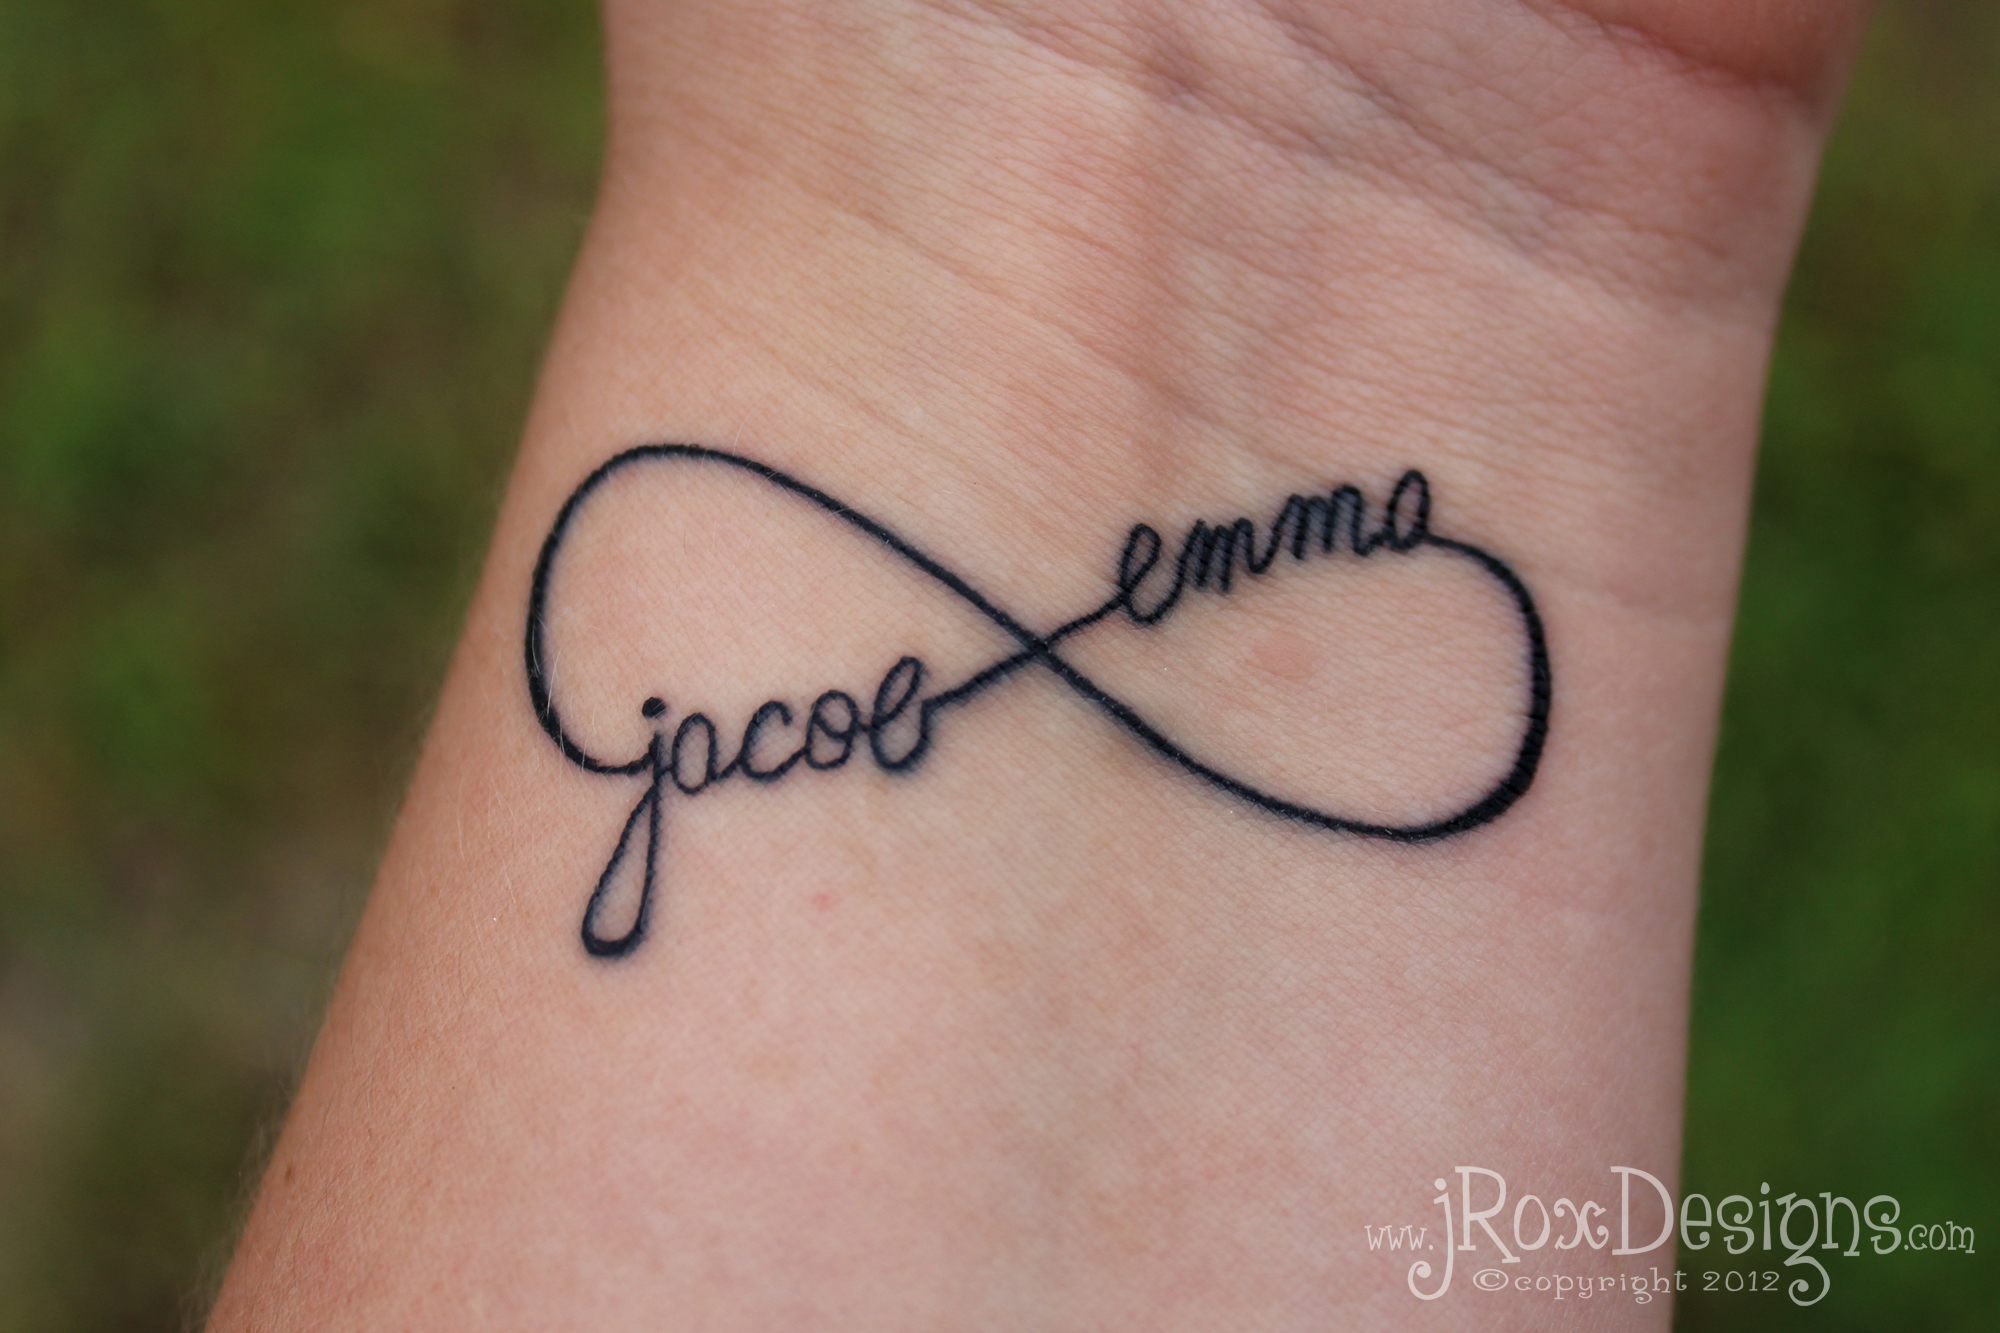 Kid's Names Infinity Tattoo Jroxdesigns Ideas And Designs